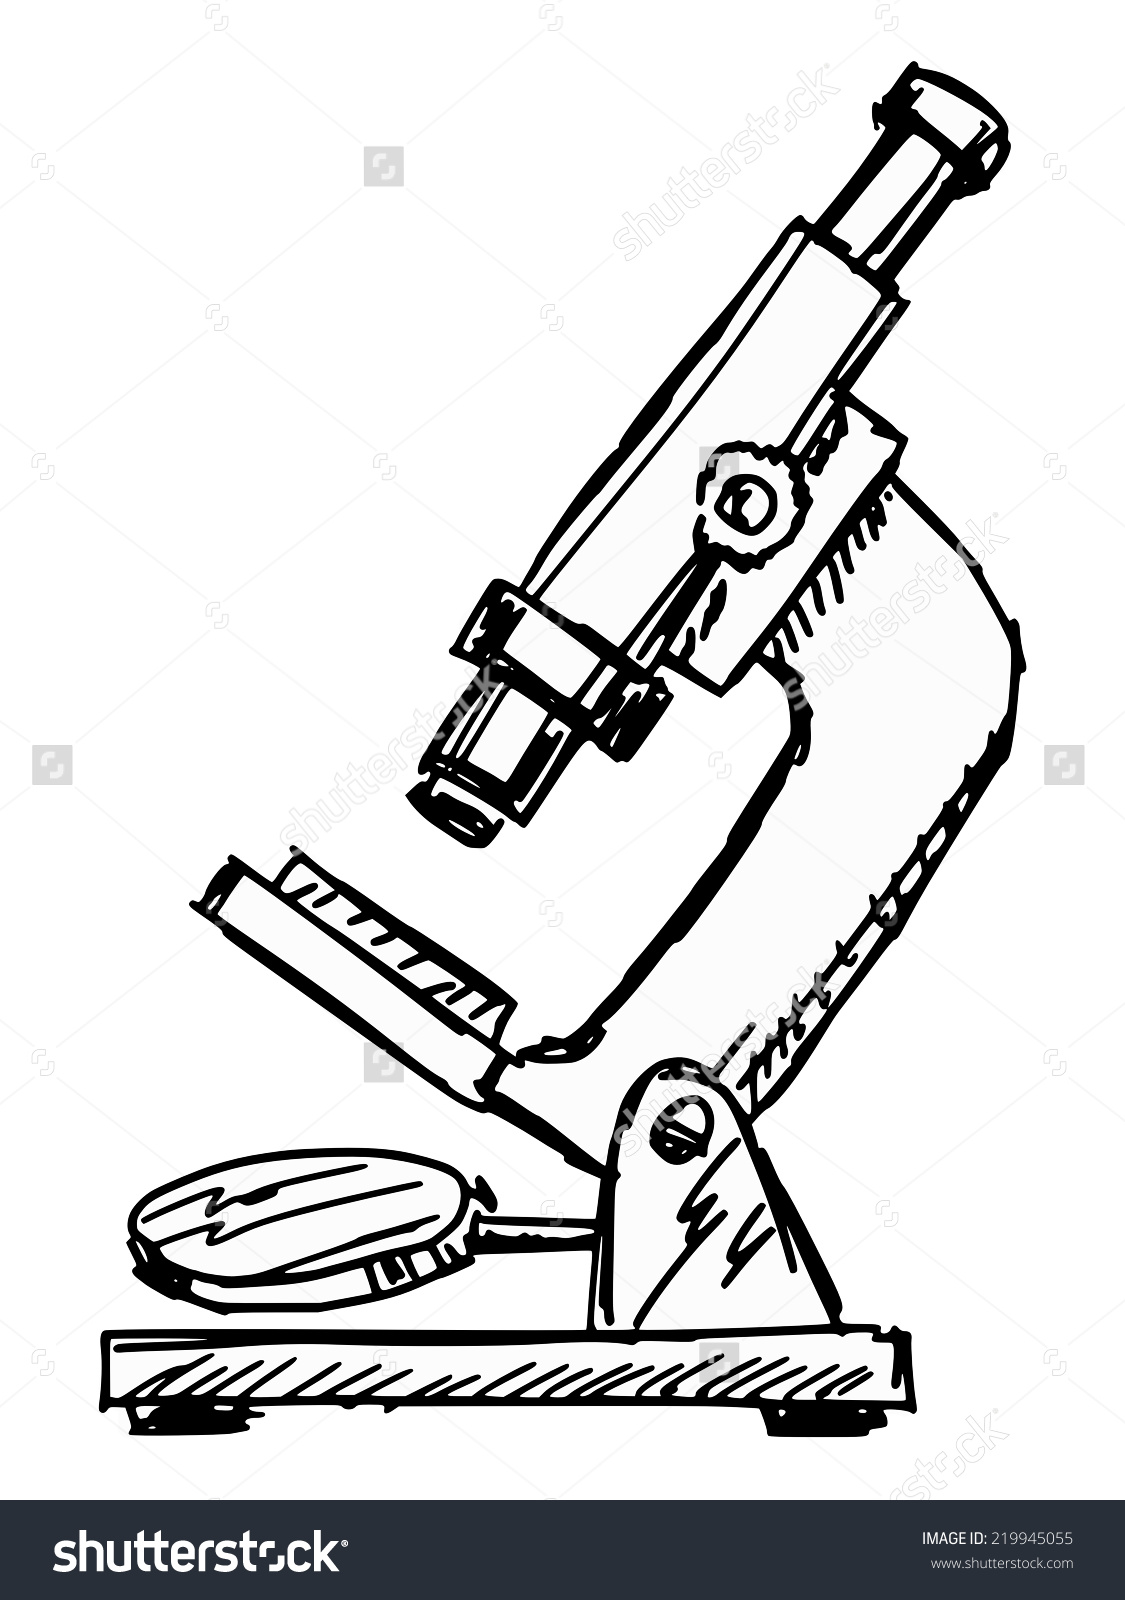 hight resolution of hand drawn sketch illustration microscope stock vector 219945055